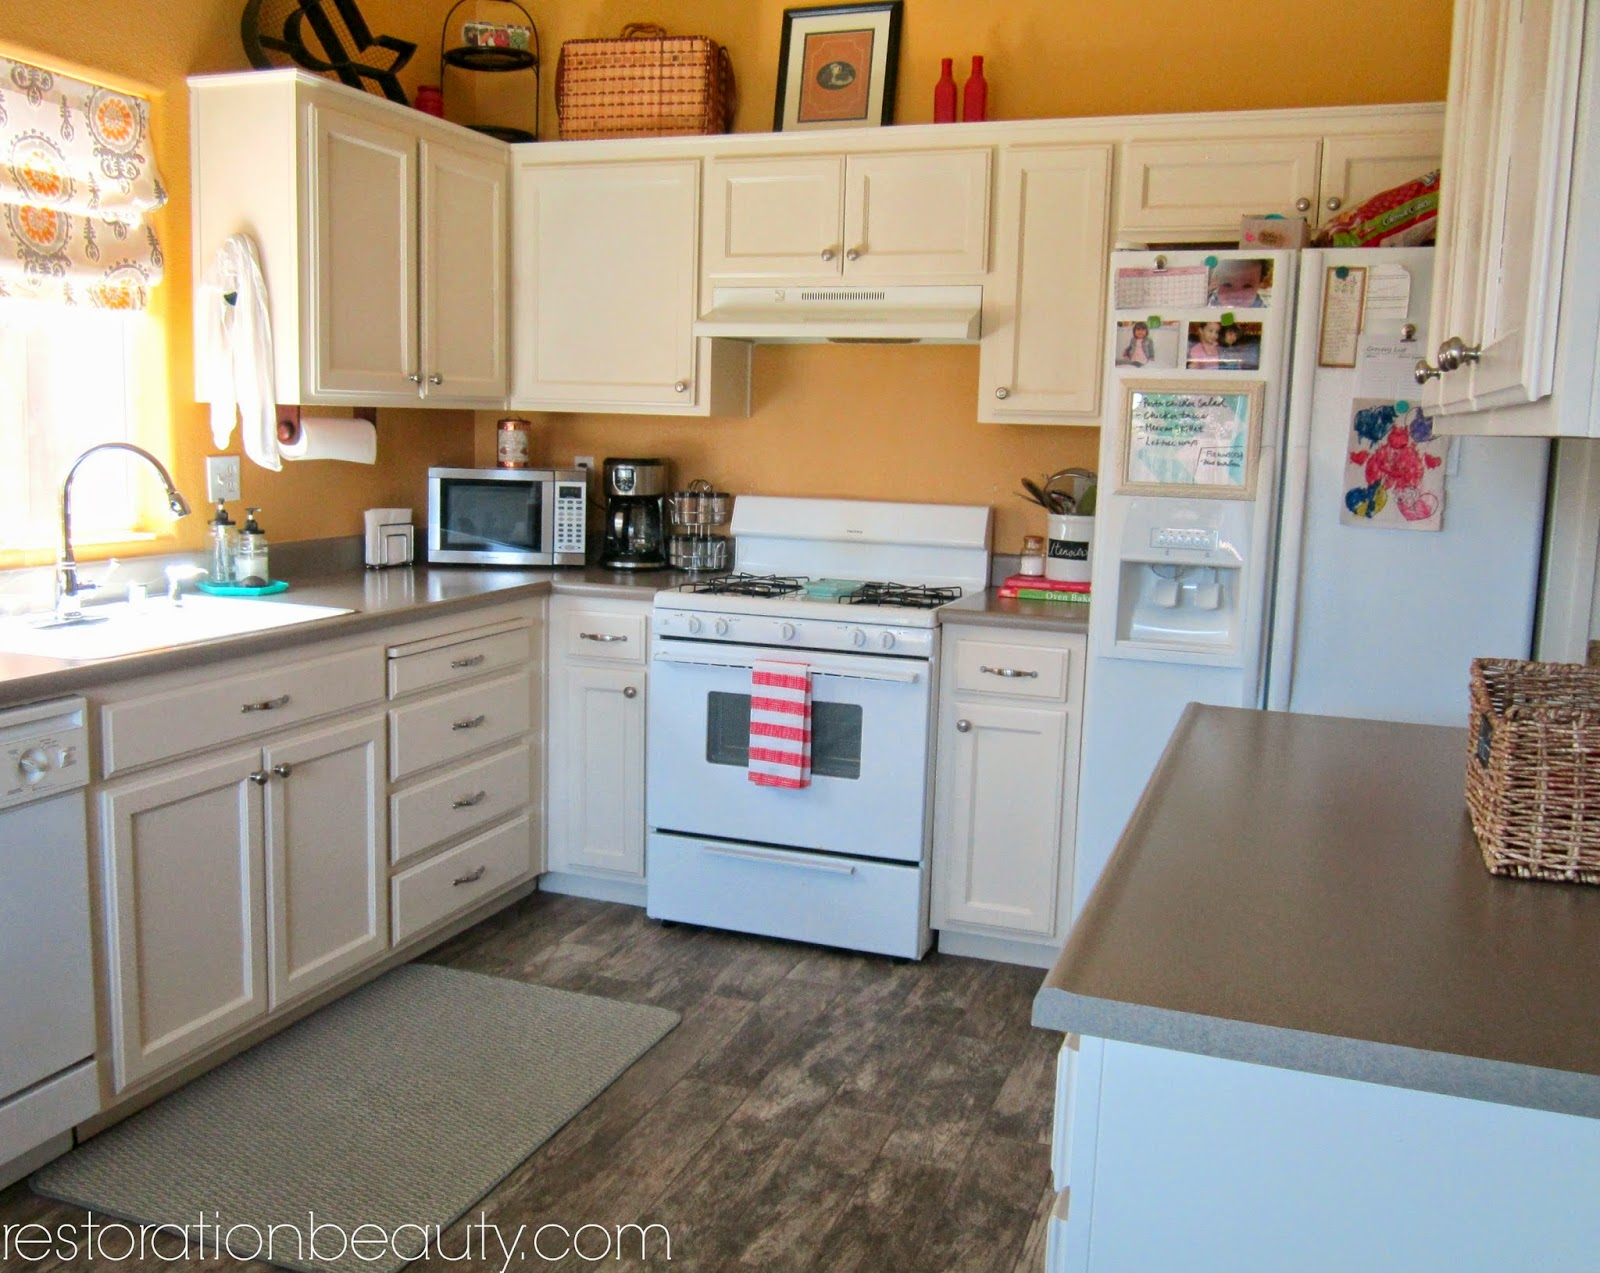 Restoration Beauty Creating A Bright Colorful Kitchen